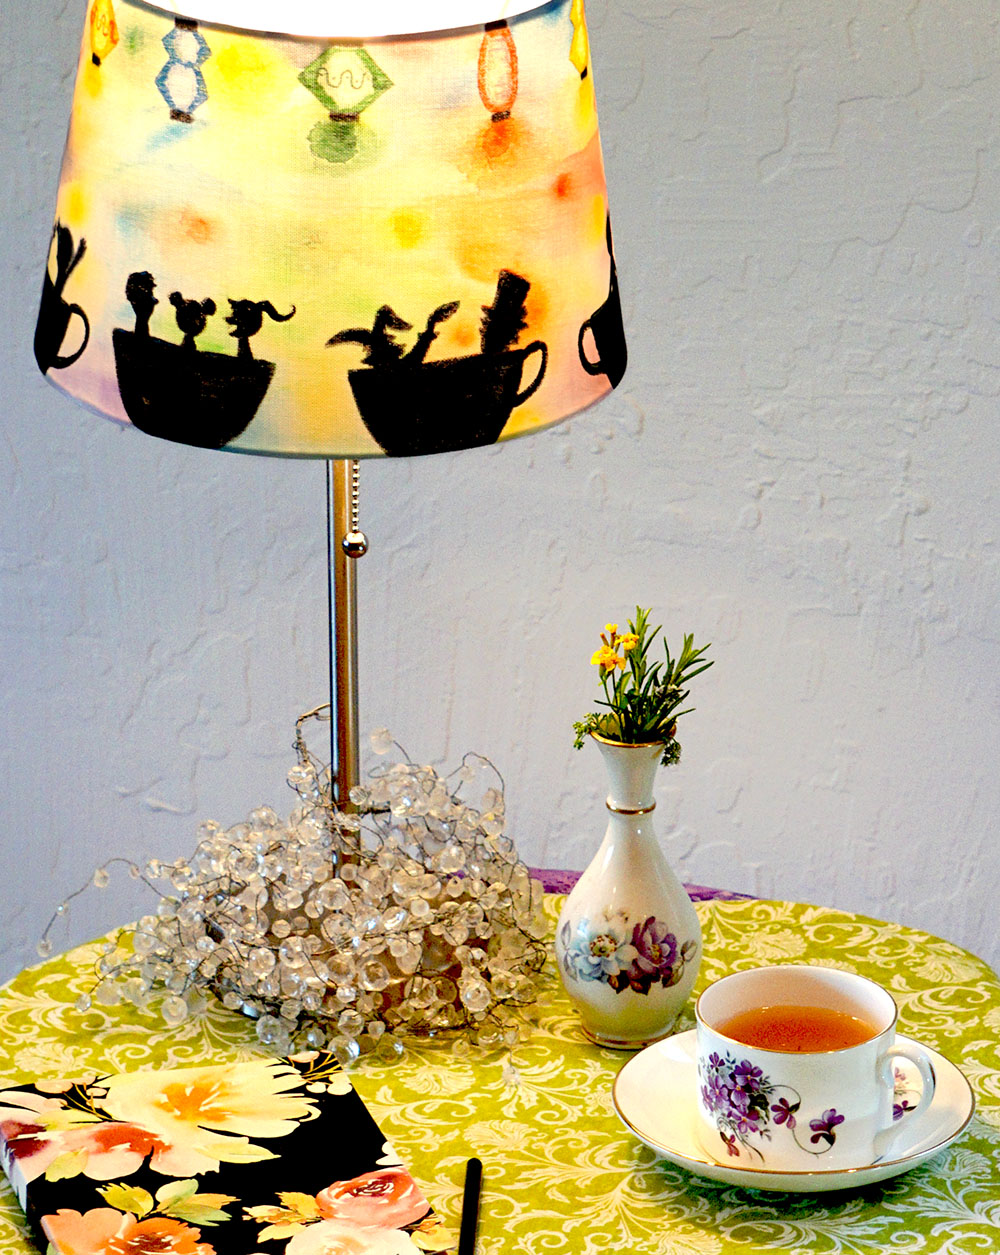 Lampshade with watercolor like background and people riding teacups lining the bottom.